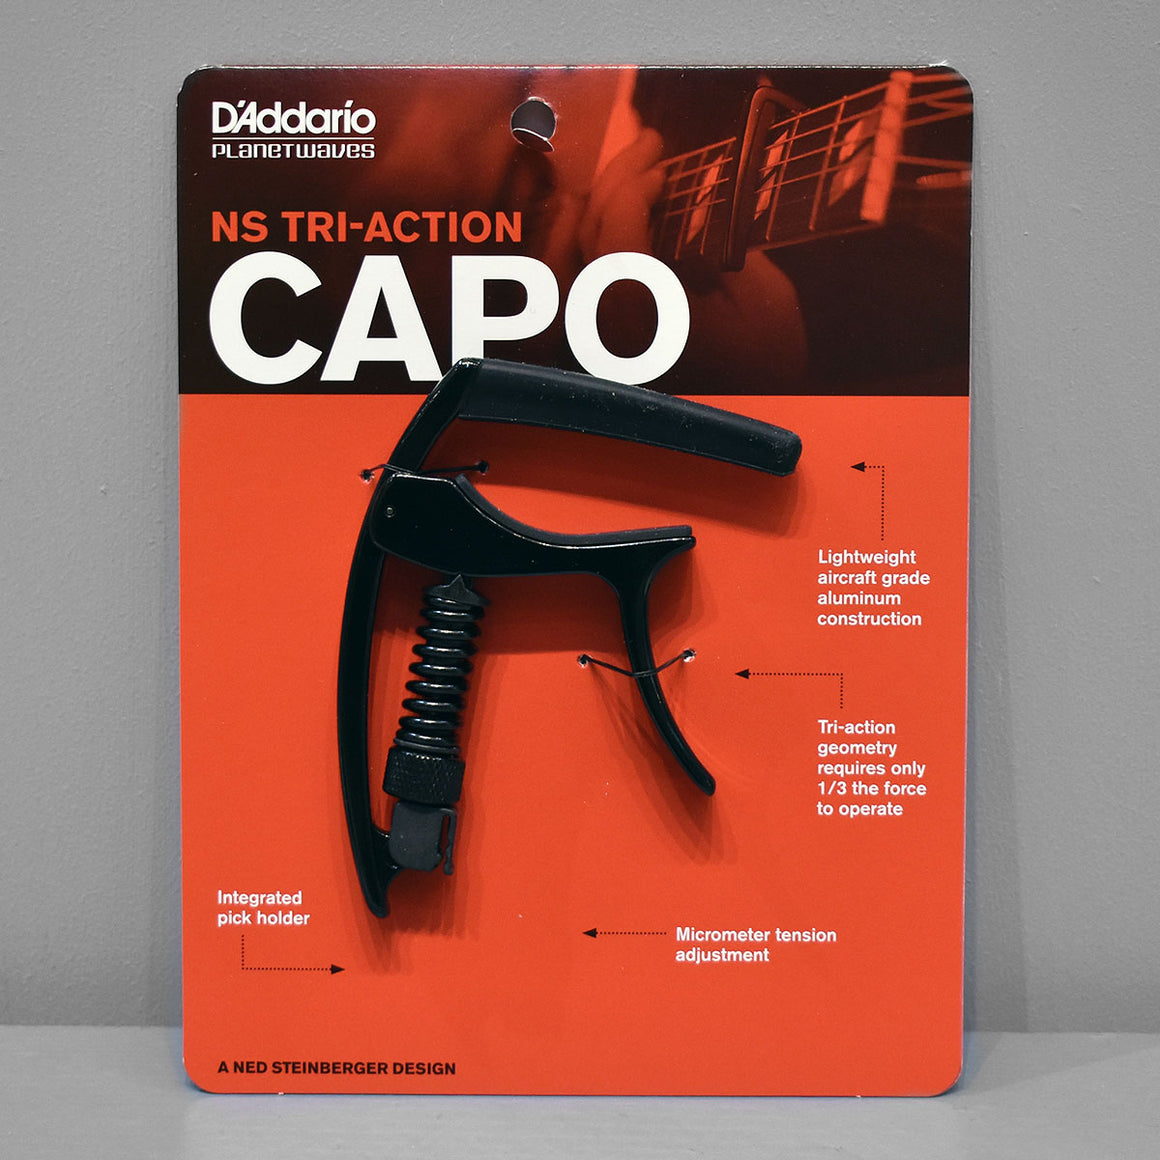 D'addario Planet Waves Tri Action Capo (PW-CP-09)